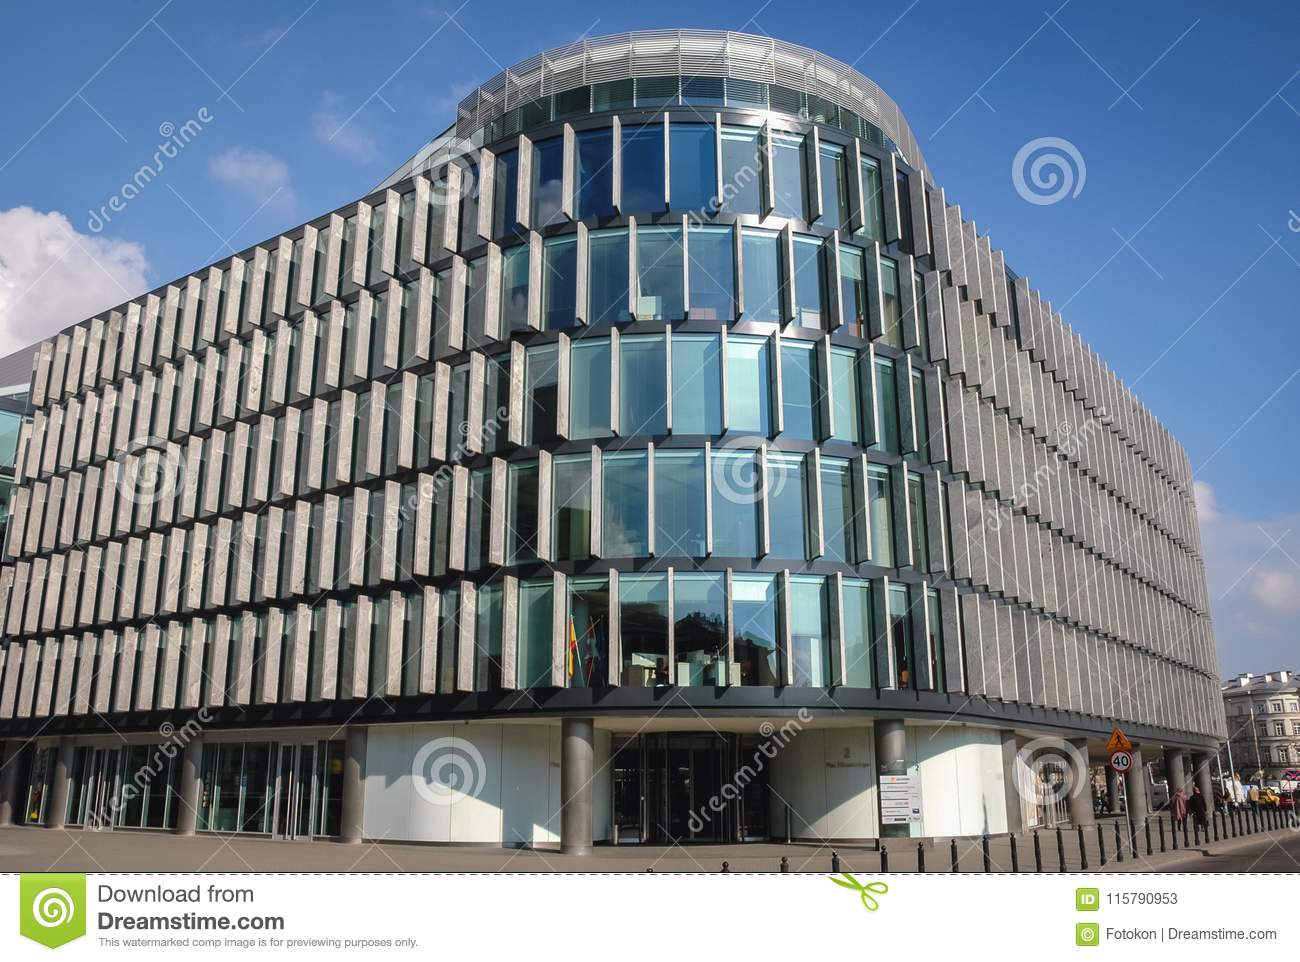 Norman foster office Daughter Warsaw Poland April 2 2006 Metropolitan Office Building Designed By Sir Norman Foster Located On The Pilsudski Square In Warsaw City Fronterainformativaco Metropolitan Building In Warsaw Editorial Stock Photo Image Of